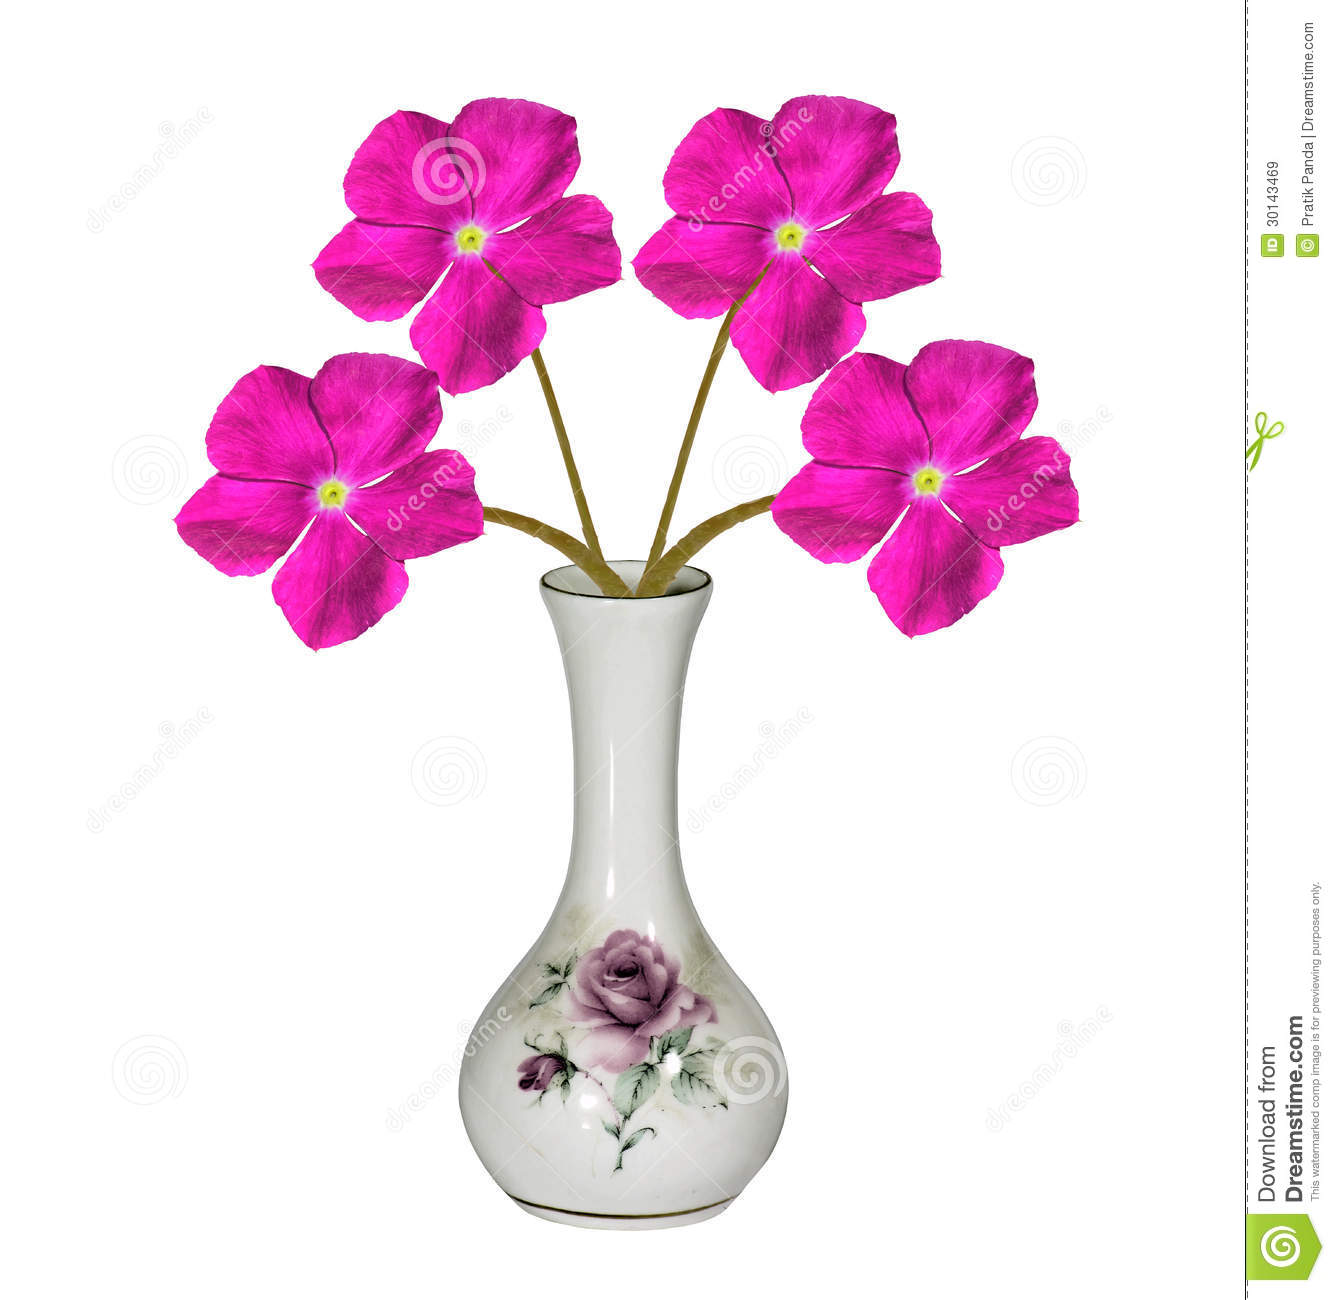 hdr designer flower vase home decor stock illustration illustration of flowers glass 30143469. Black Bedroom Furniture Sets. Home Design Ideas